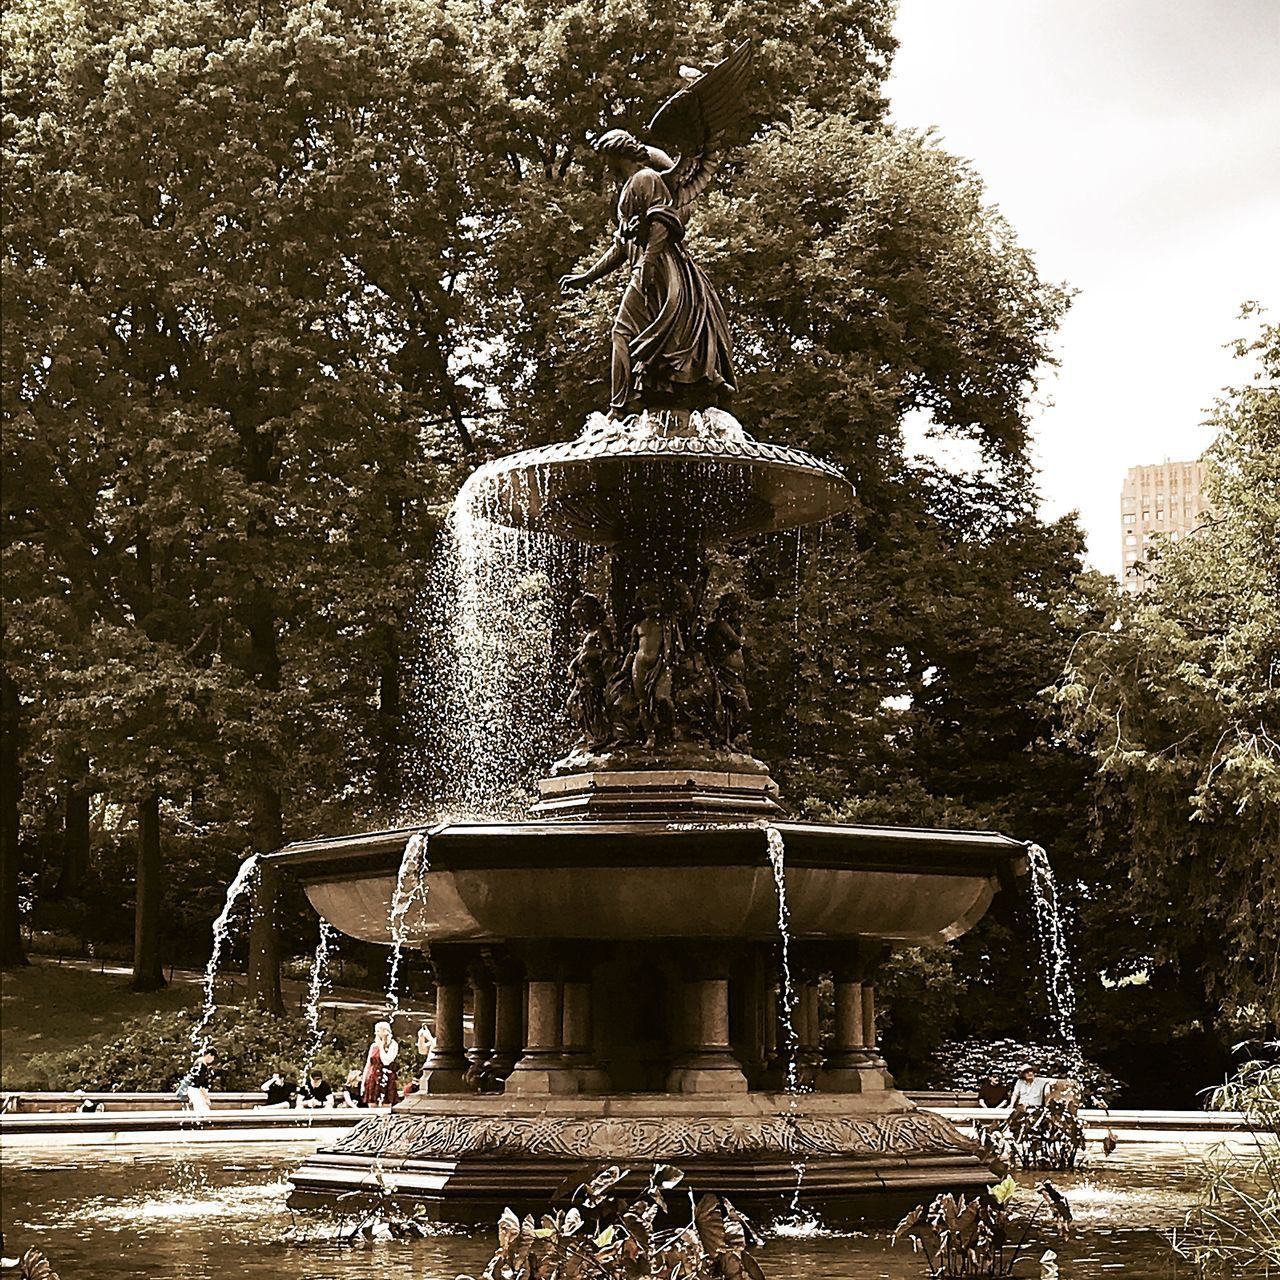 FOUNTAIN IN PARK AGAINST TREES AND PLANTS